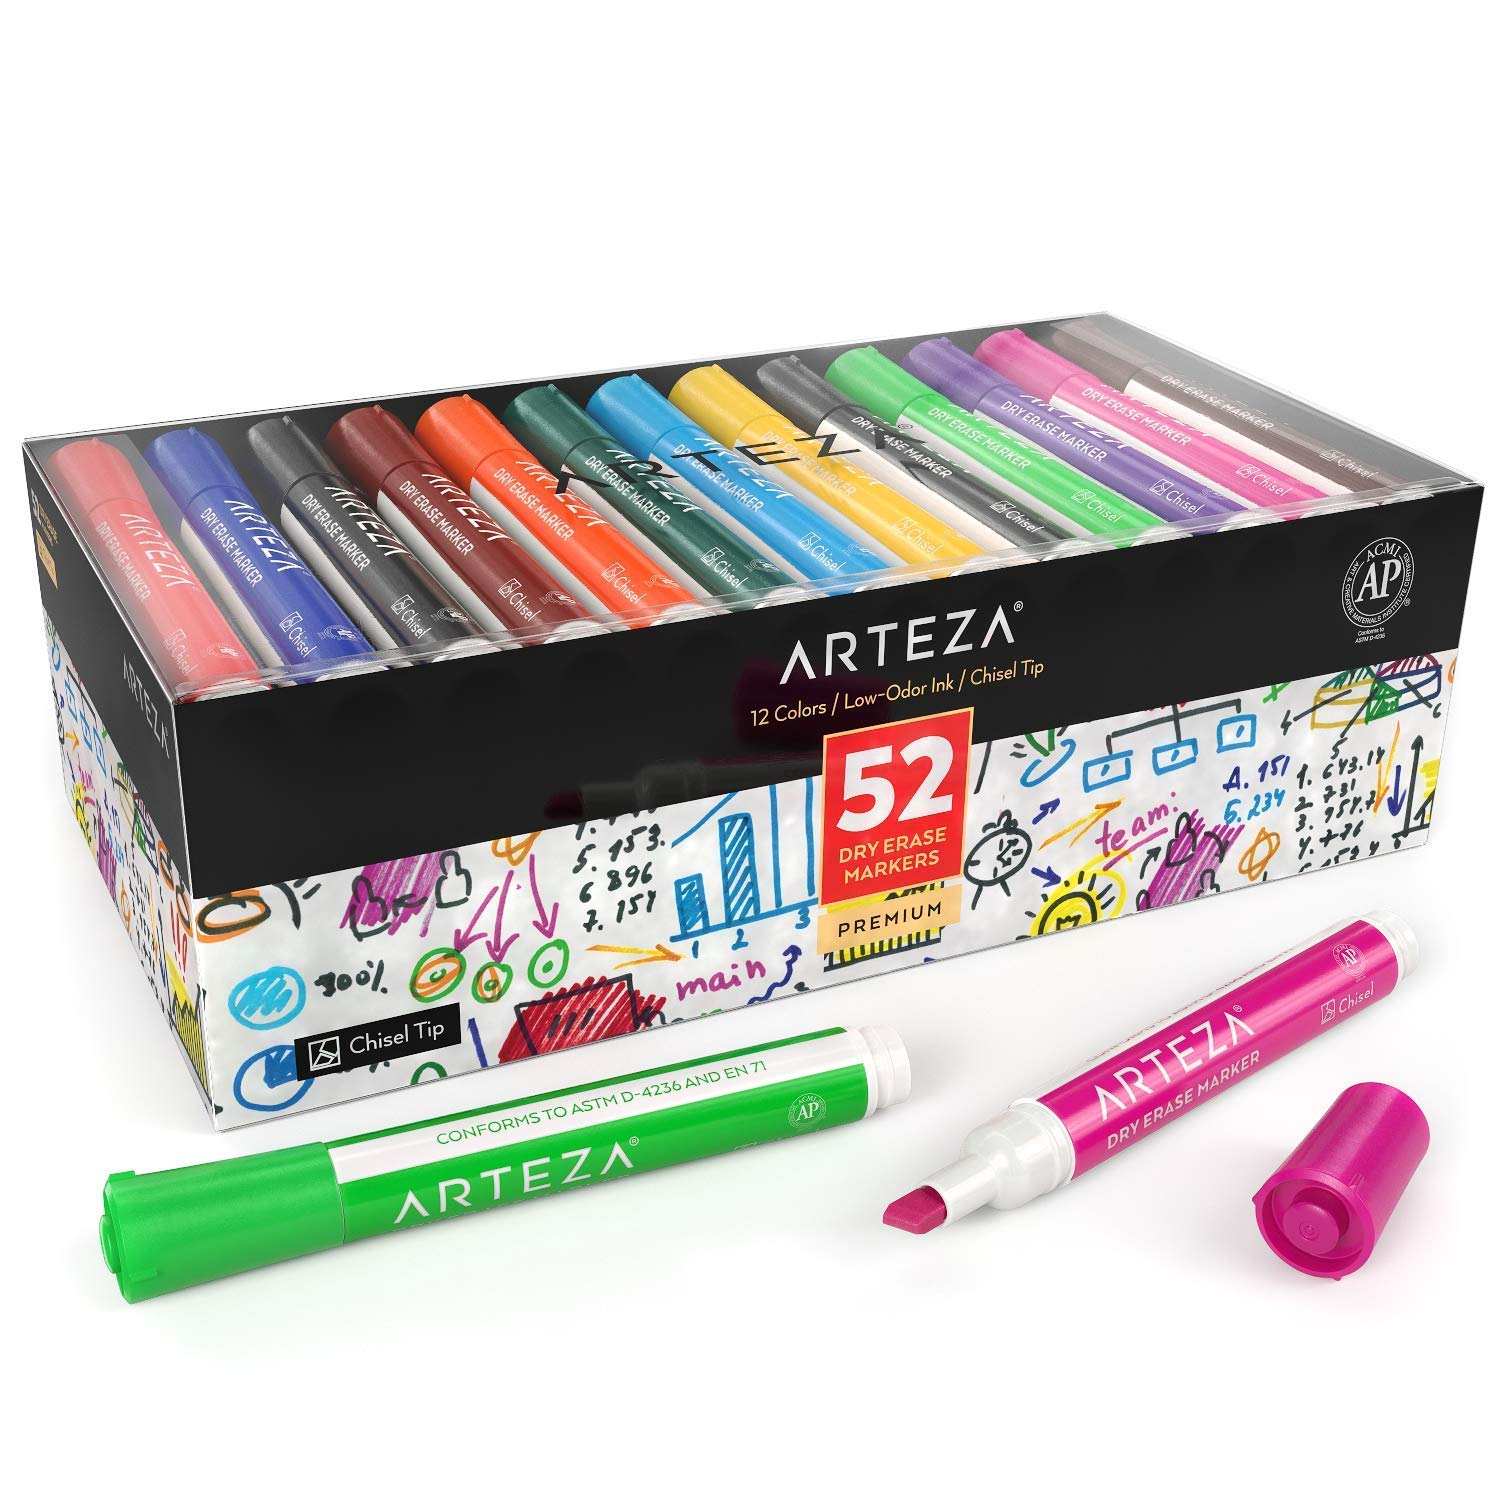 Amazon: Save up to 35% on Arteza Dry Erase Markers